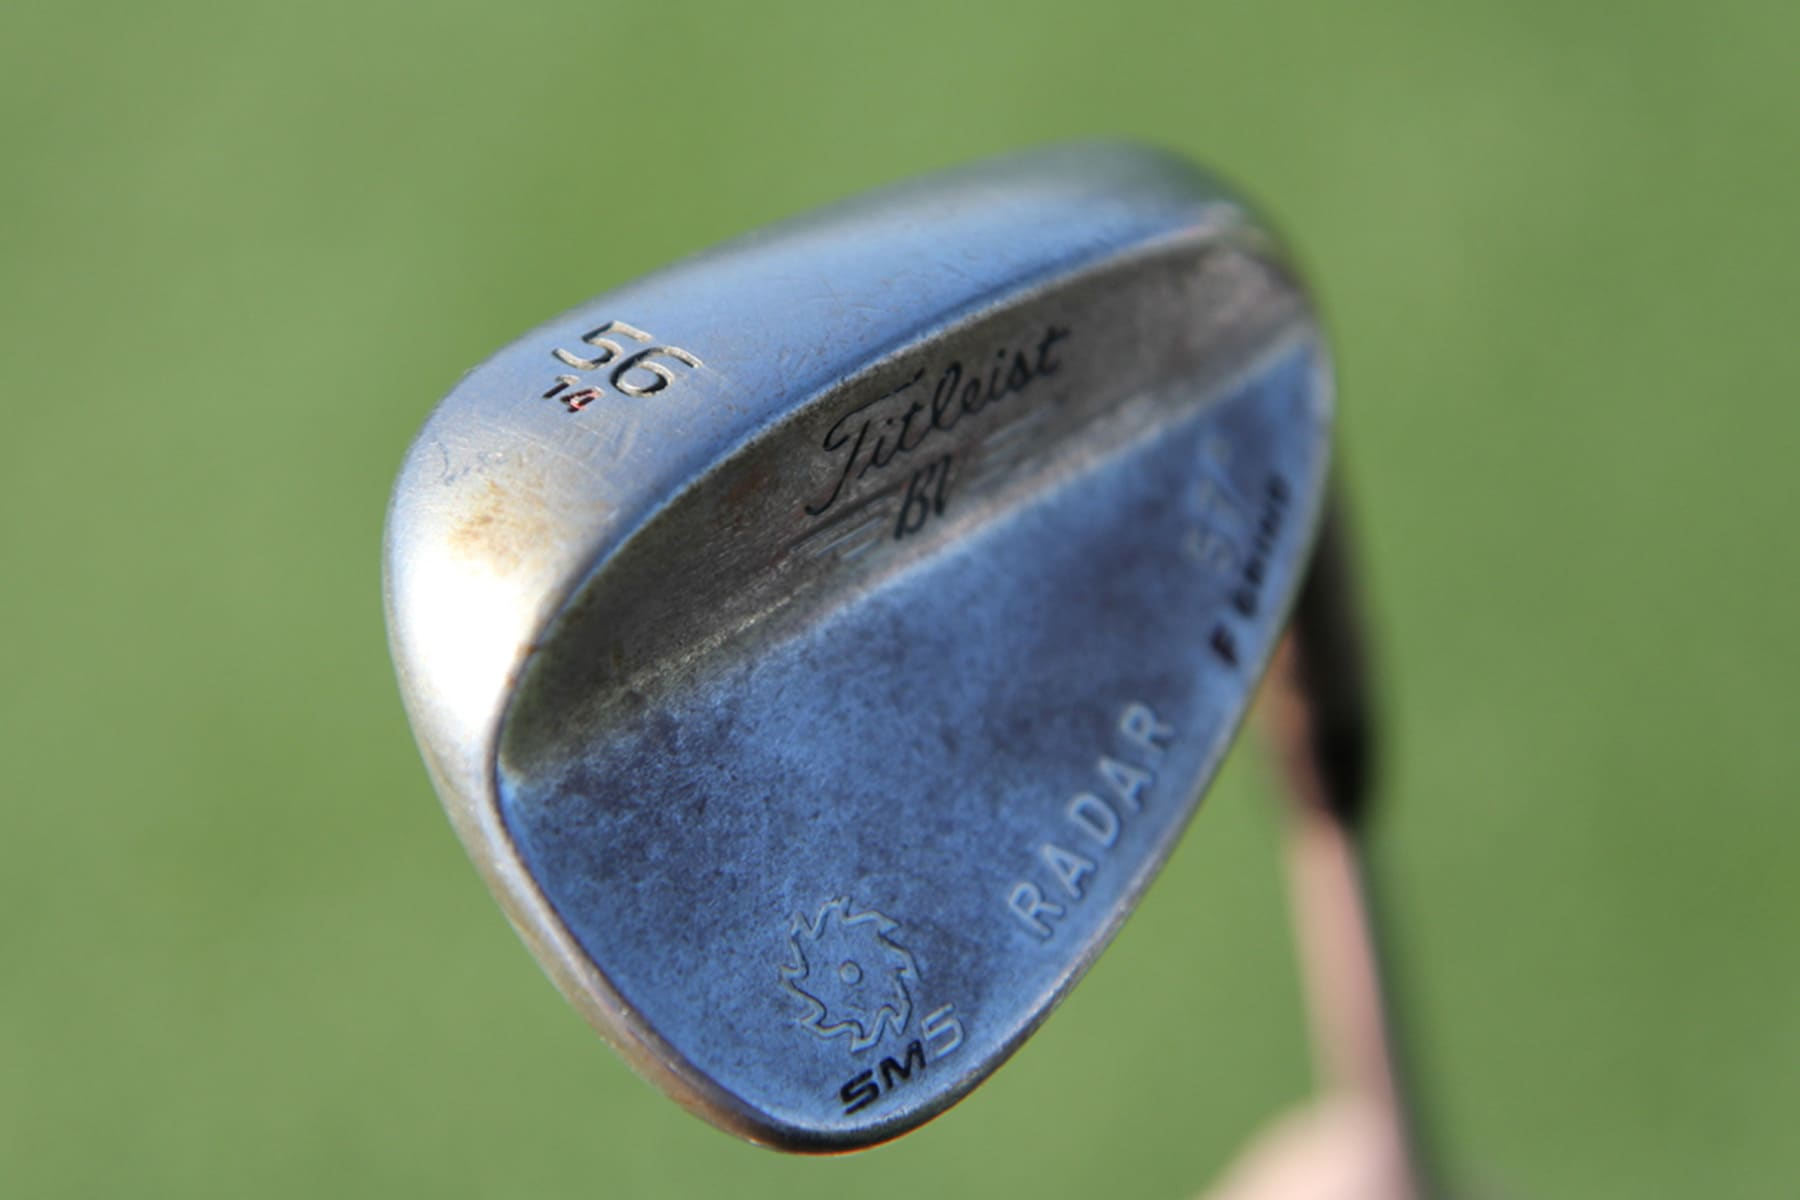 Justin sand wedge of choice, a Vokey SM5 56.14...